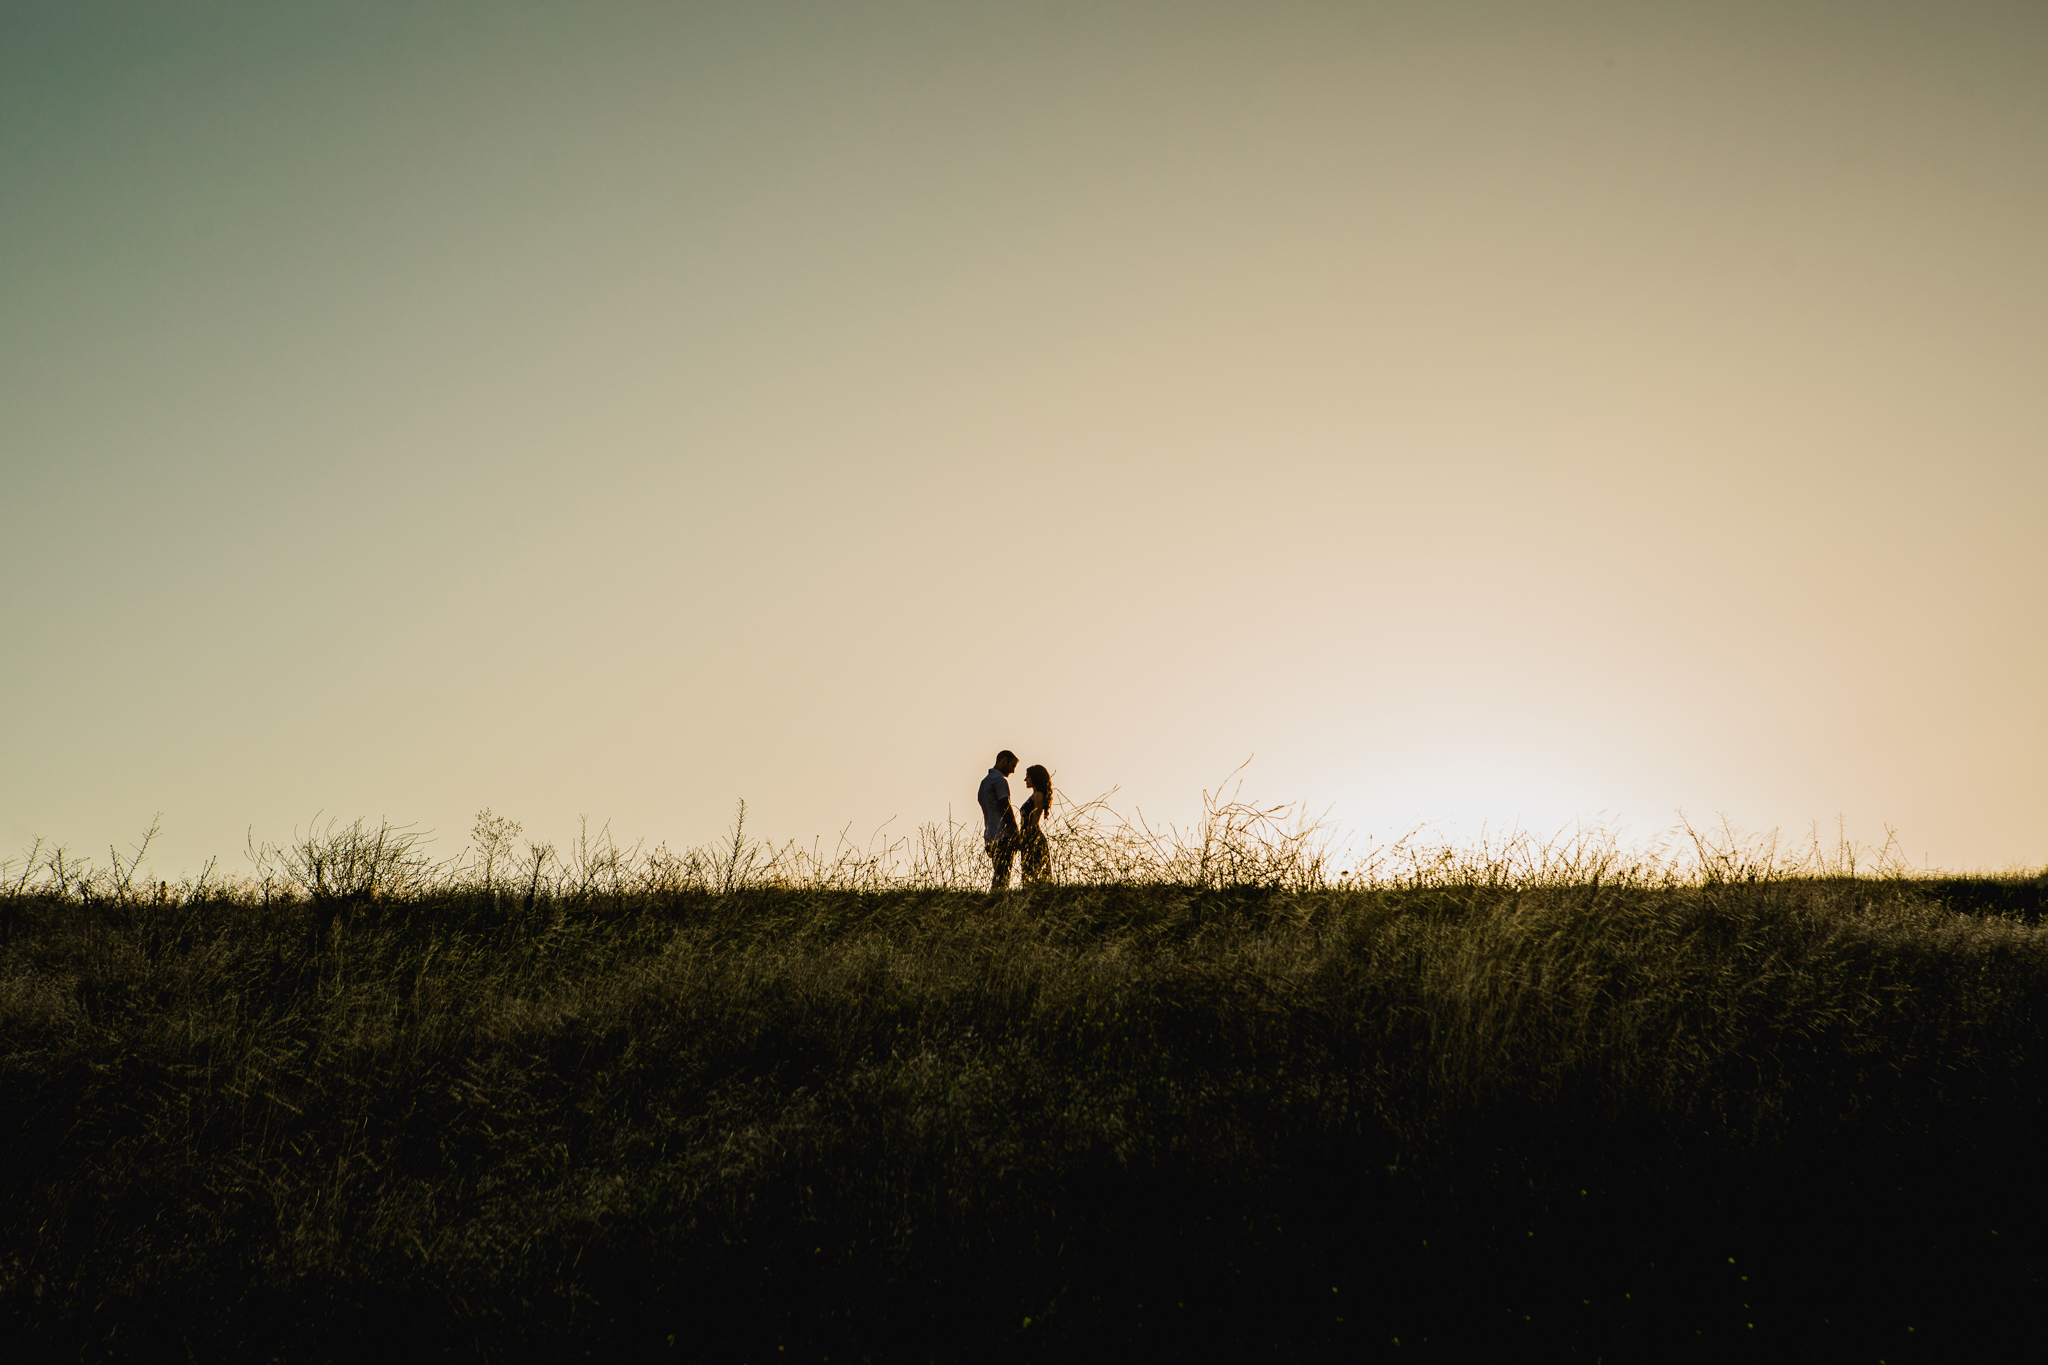 san diego wedding   photographer | silhouette of couple holding hands looking at each other in   grassy field